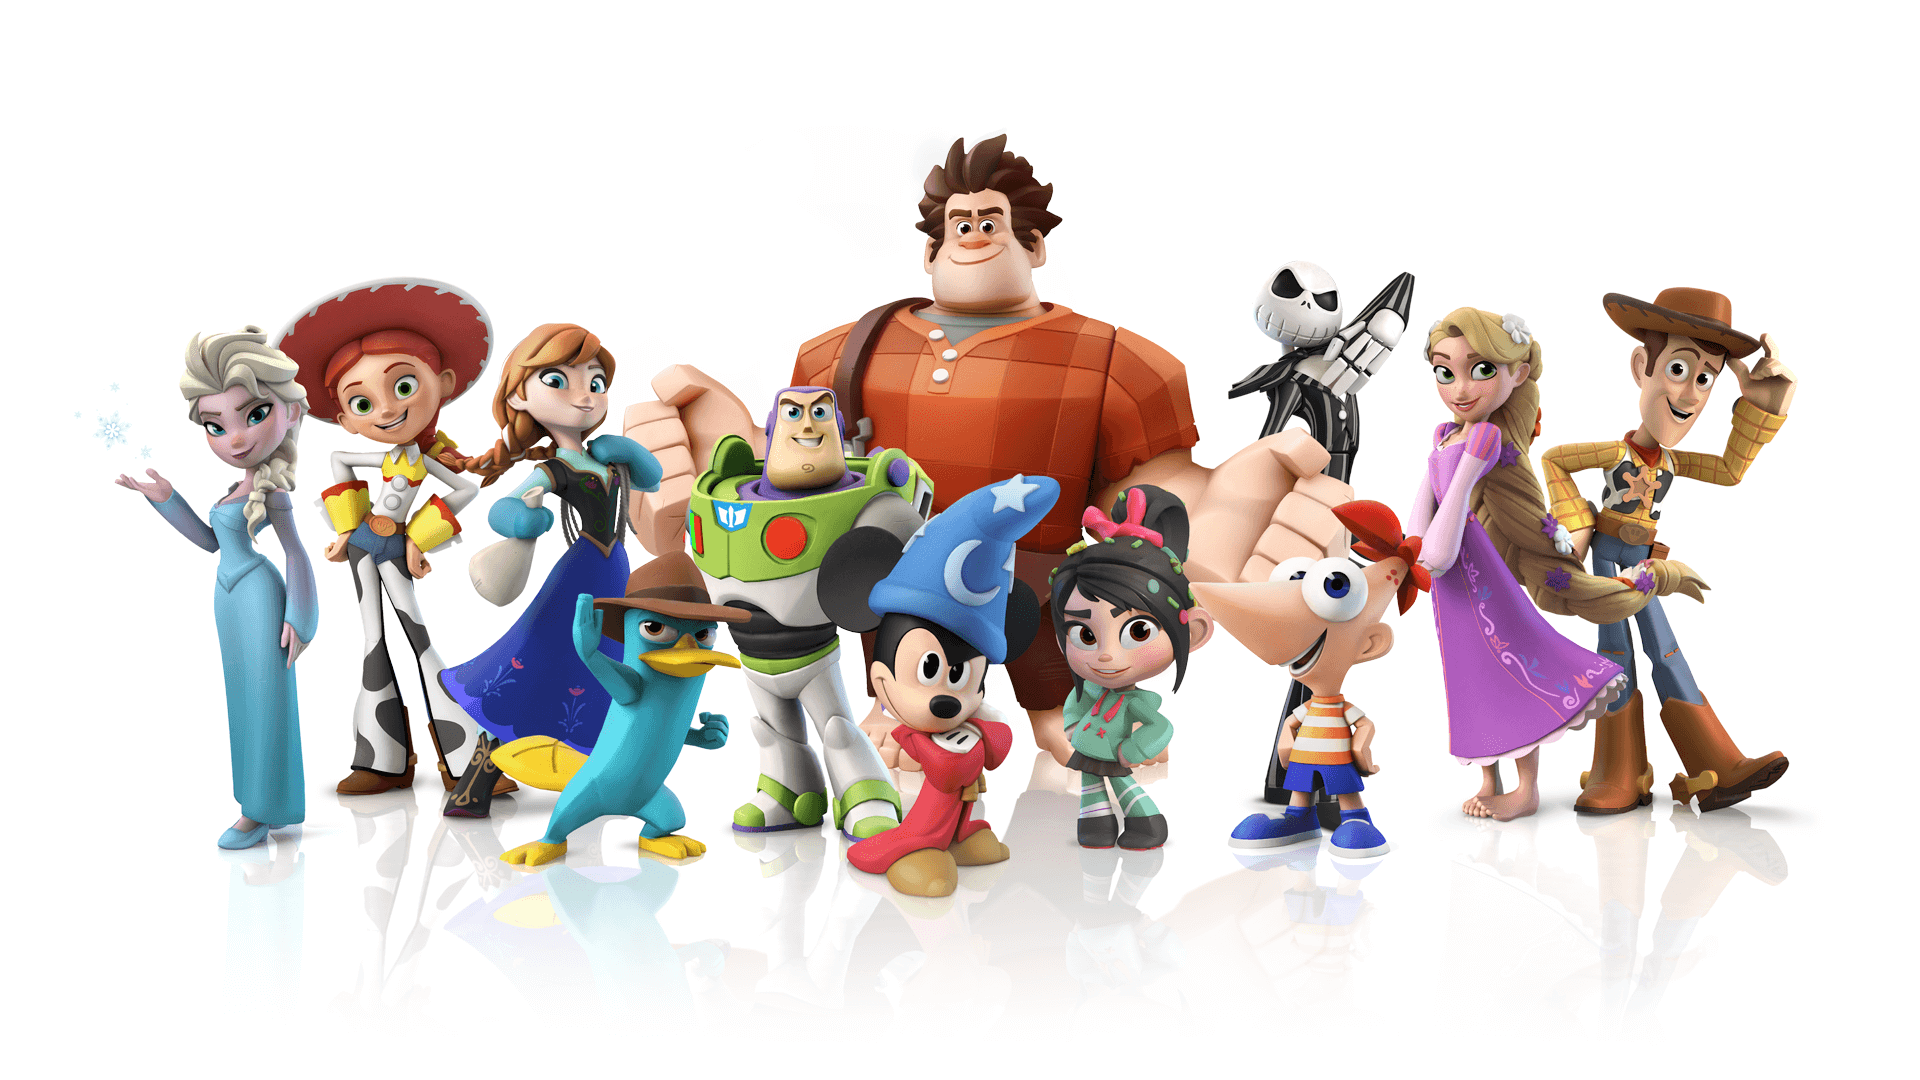 New Disney Infinity characters, playset, virtual Disneyland at 2013 D23  Expo with Toy Story, Rapunzel, Jack Skellington | Inside the Magic